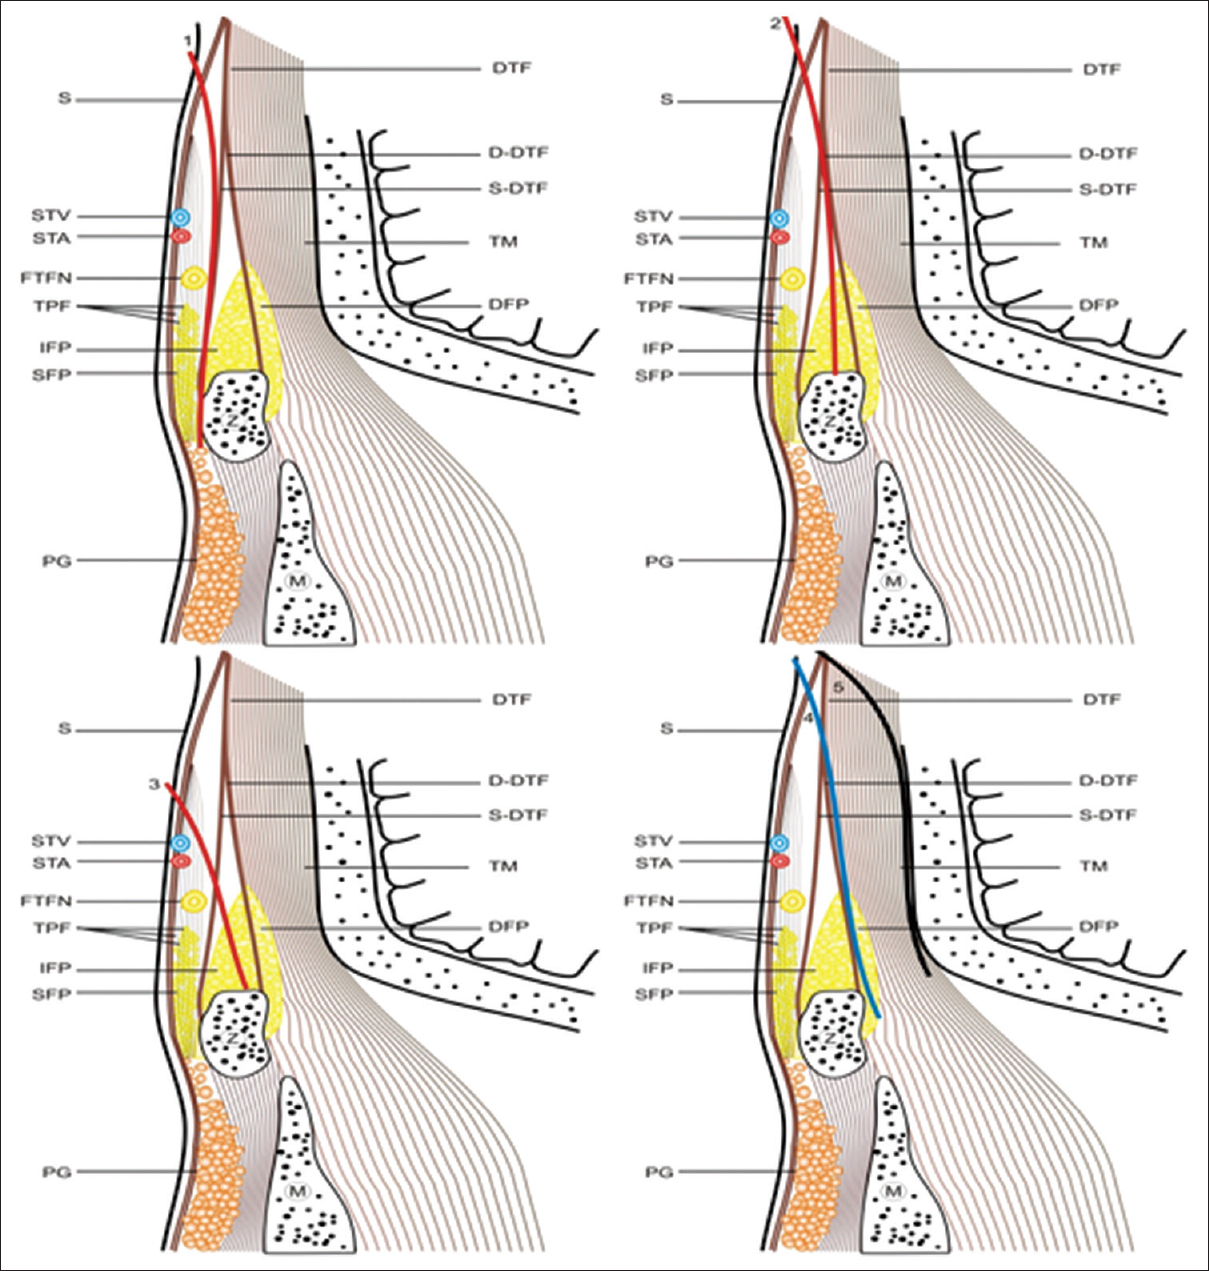 Figure 9: Various surgical approaches shown in figure [1, 2, 3-interfascial (red color line), 4-subfascial (blue line), 5-sub muscular approach (black line)]